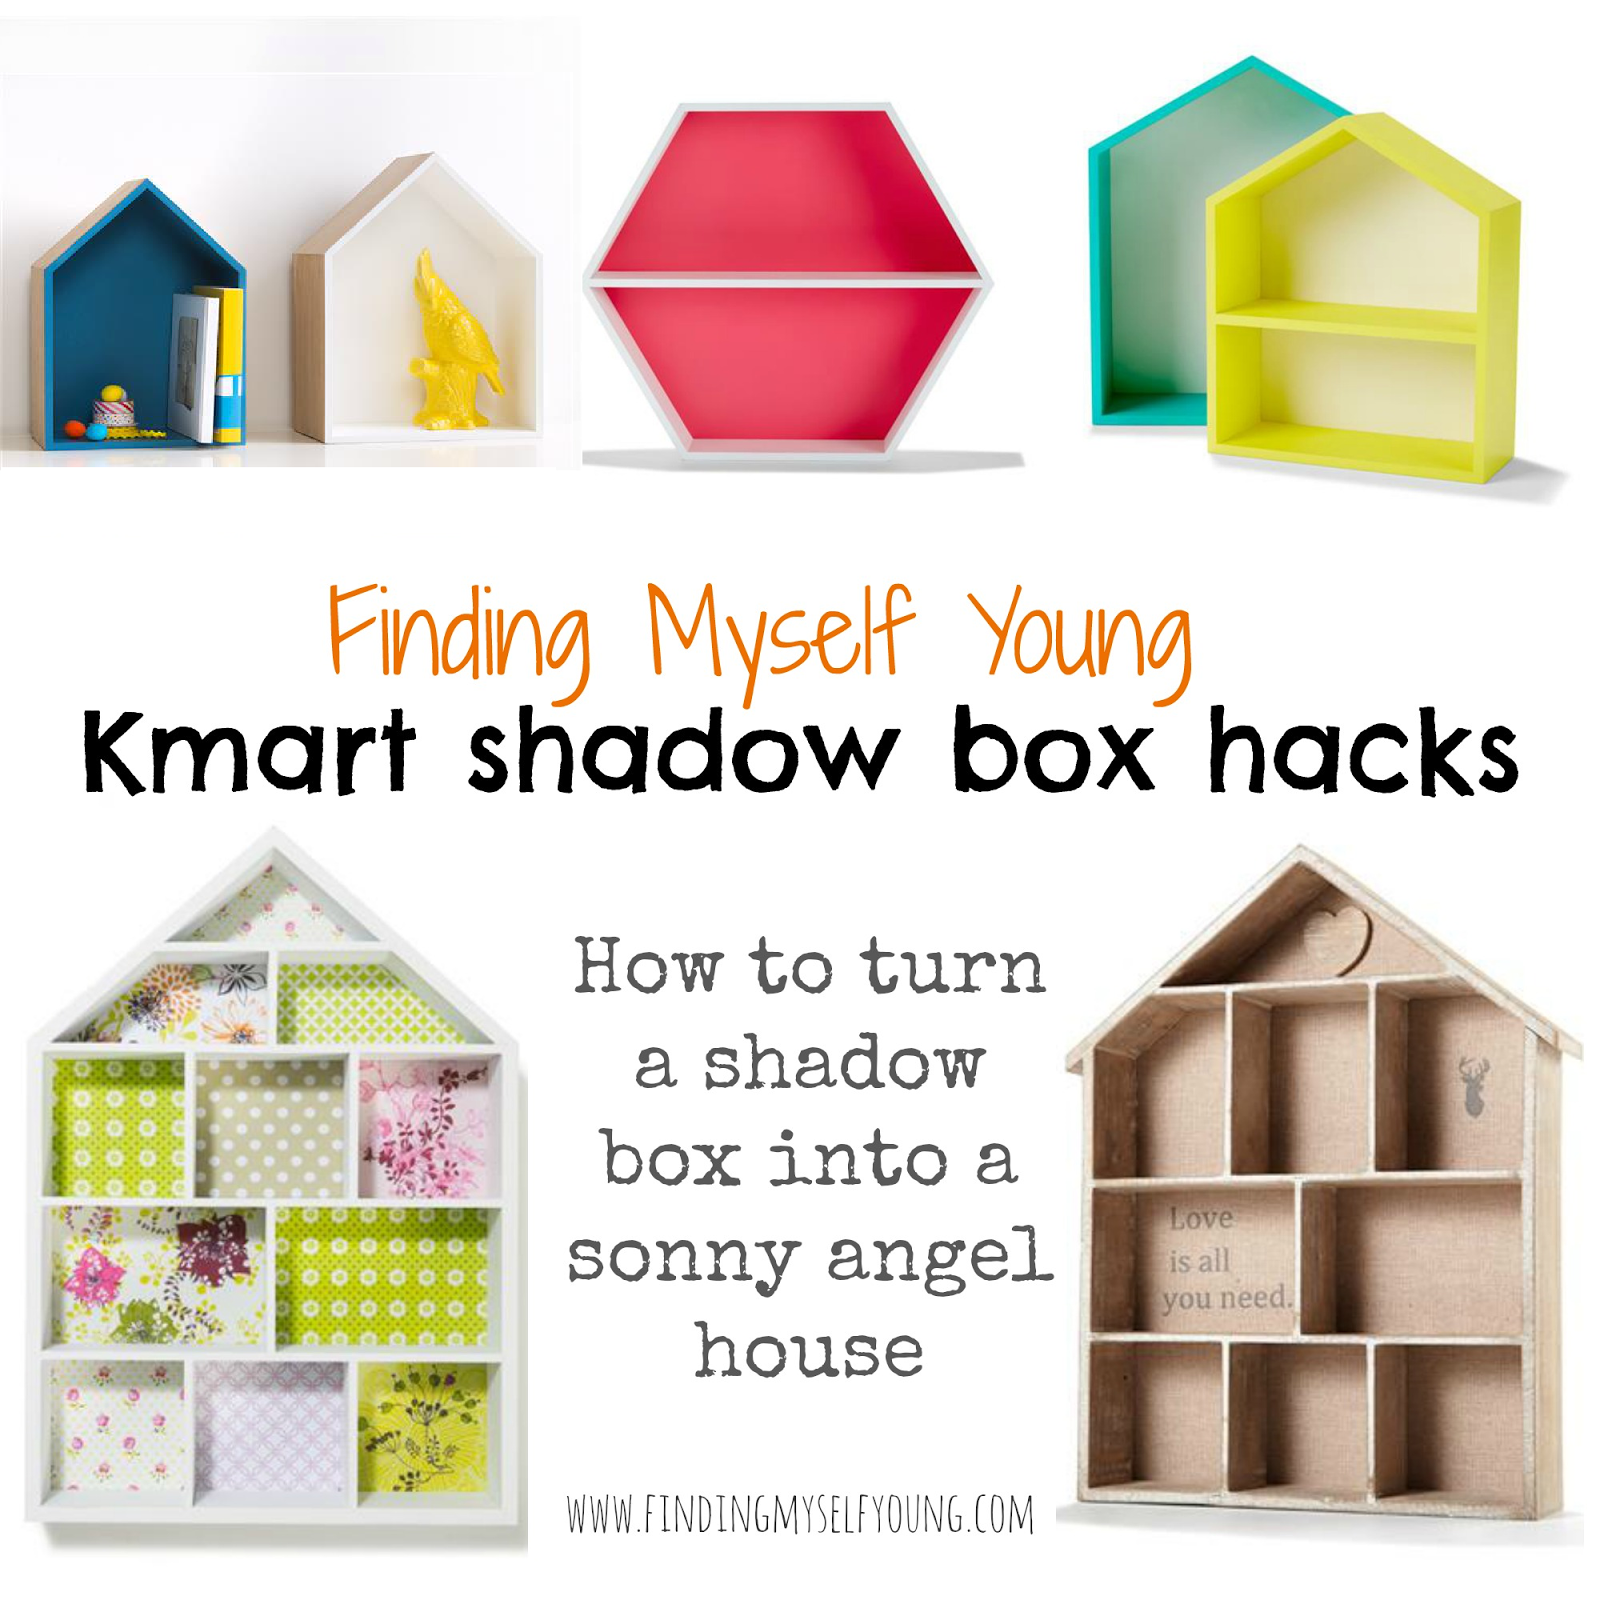 Finding Myself Young KMART HACK How to transform shadow boxes